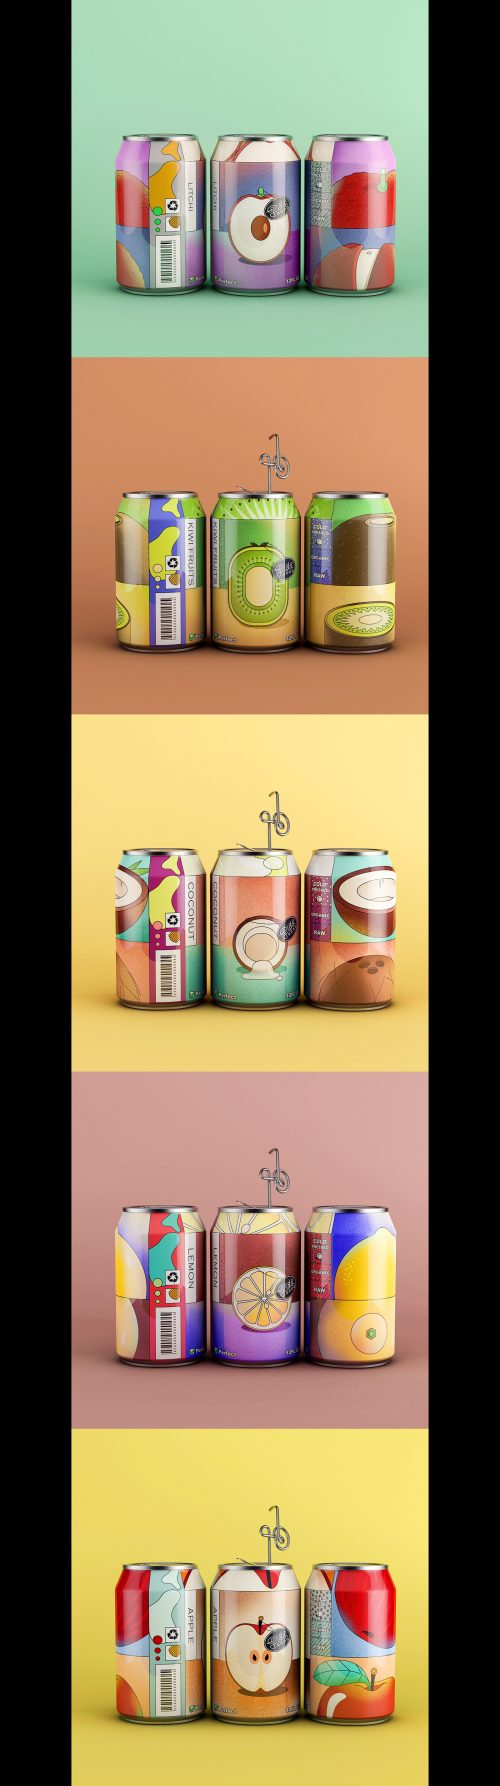 Nature Juice All Natural Fruit Beverage Can Product Packaging Design